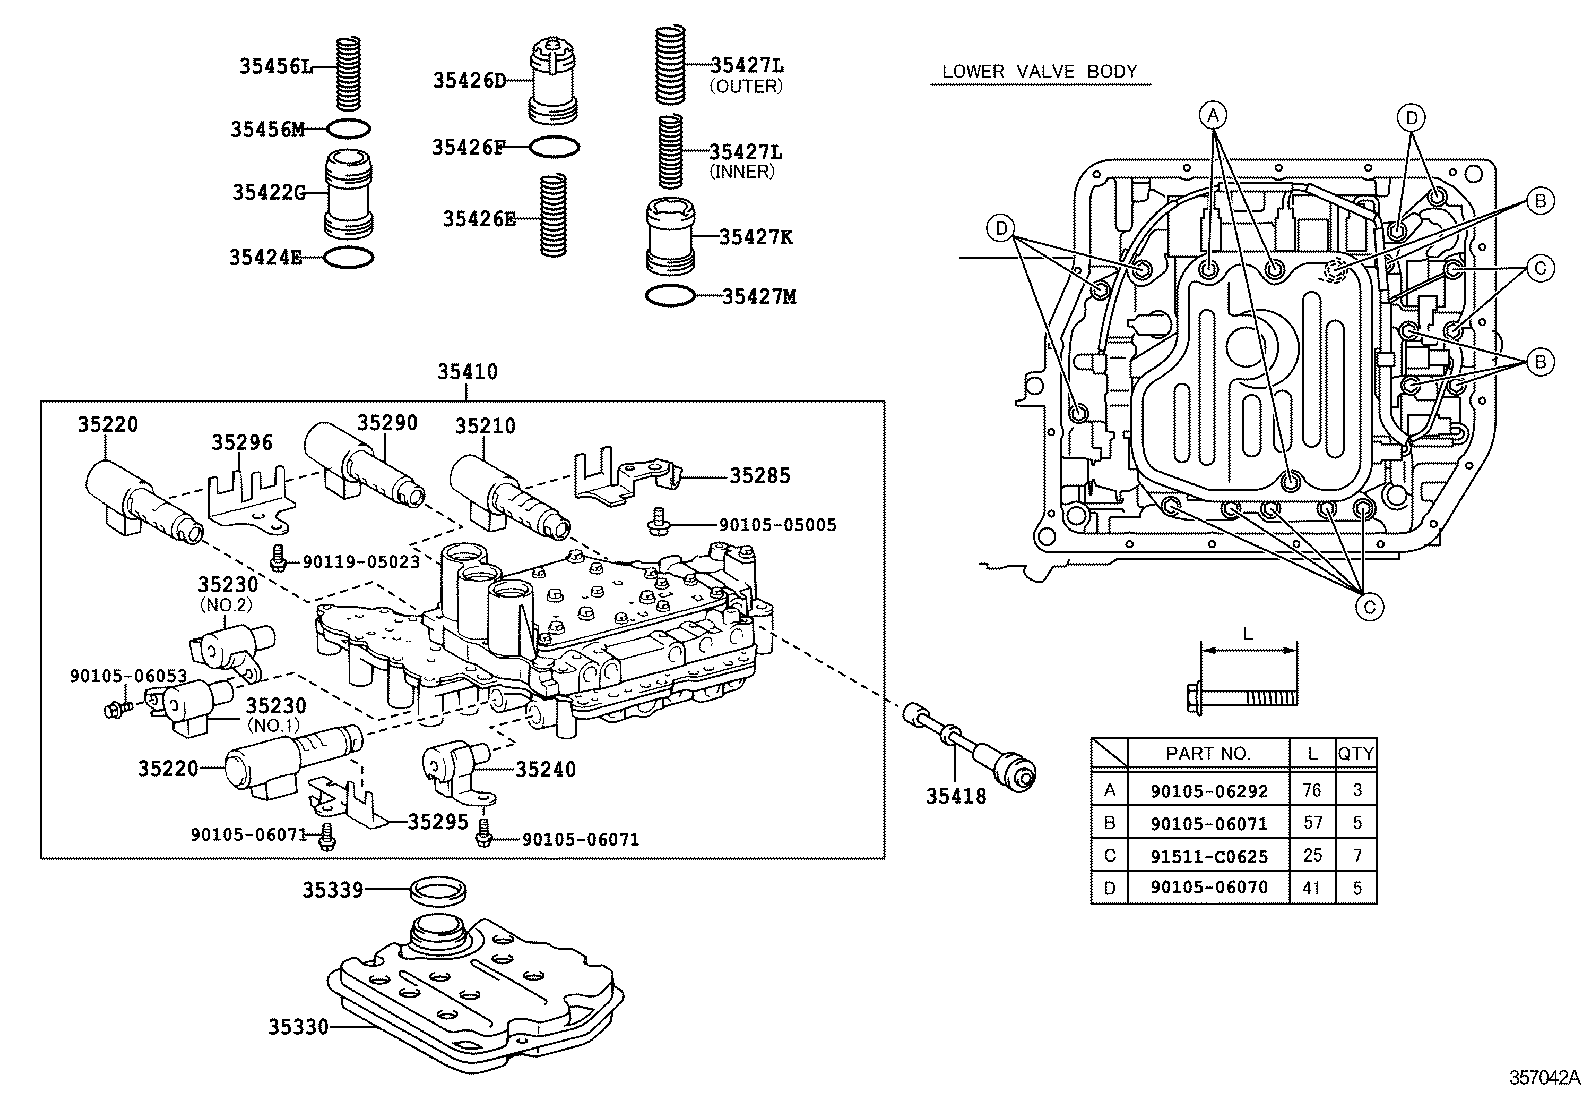 Toyota Rav4 Body Parts Diagram Periodic Amp Diagrams Science